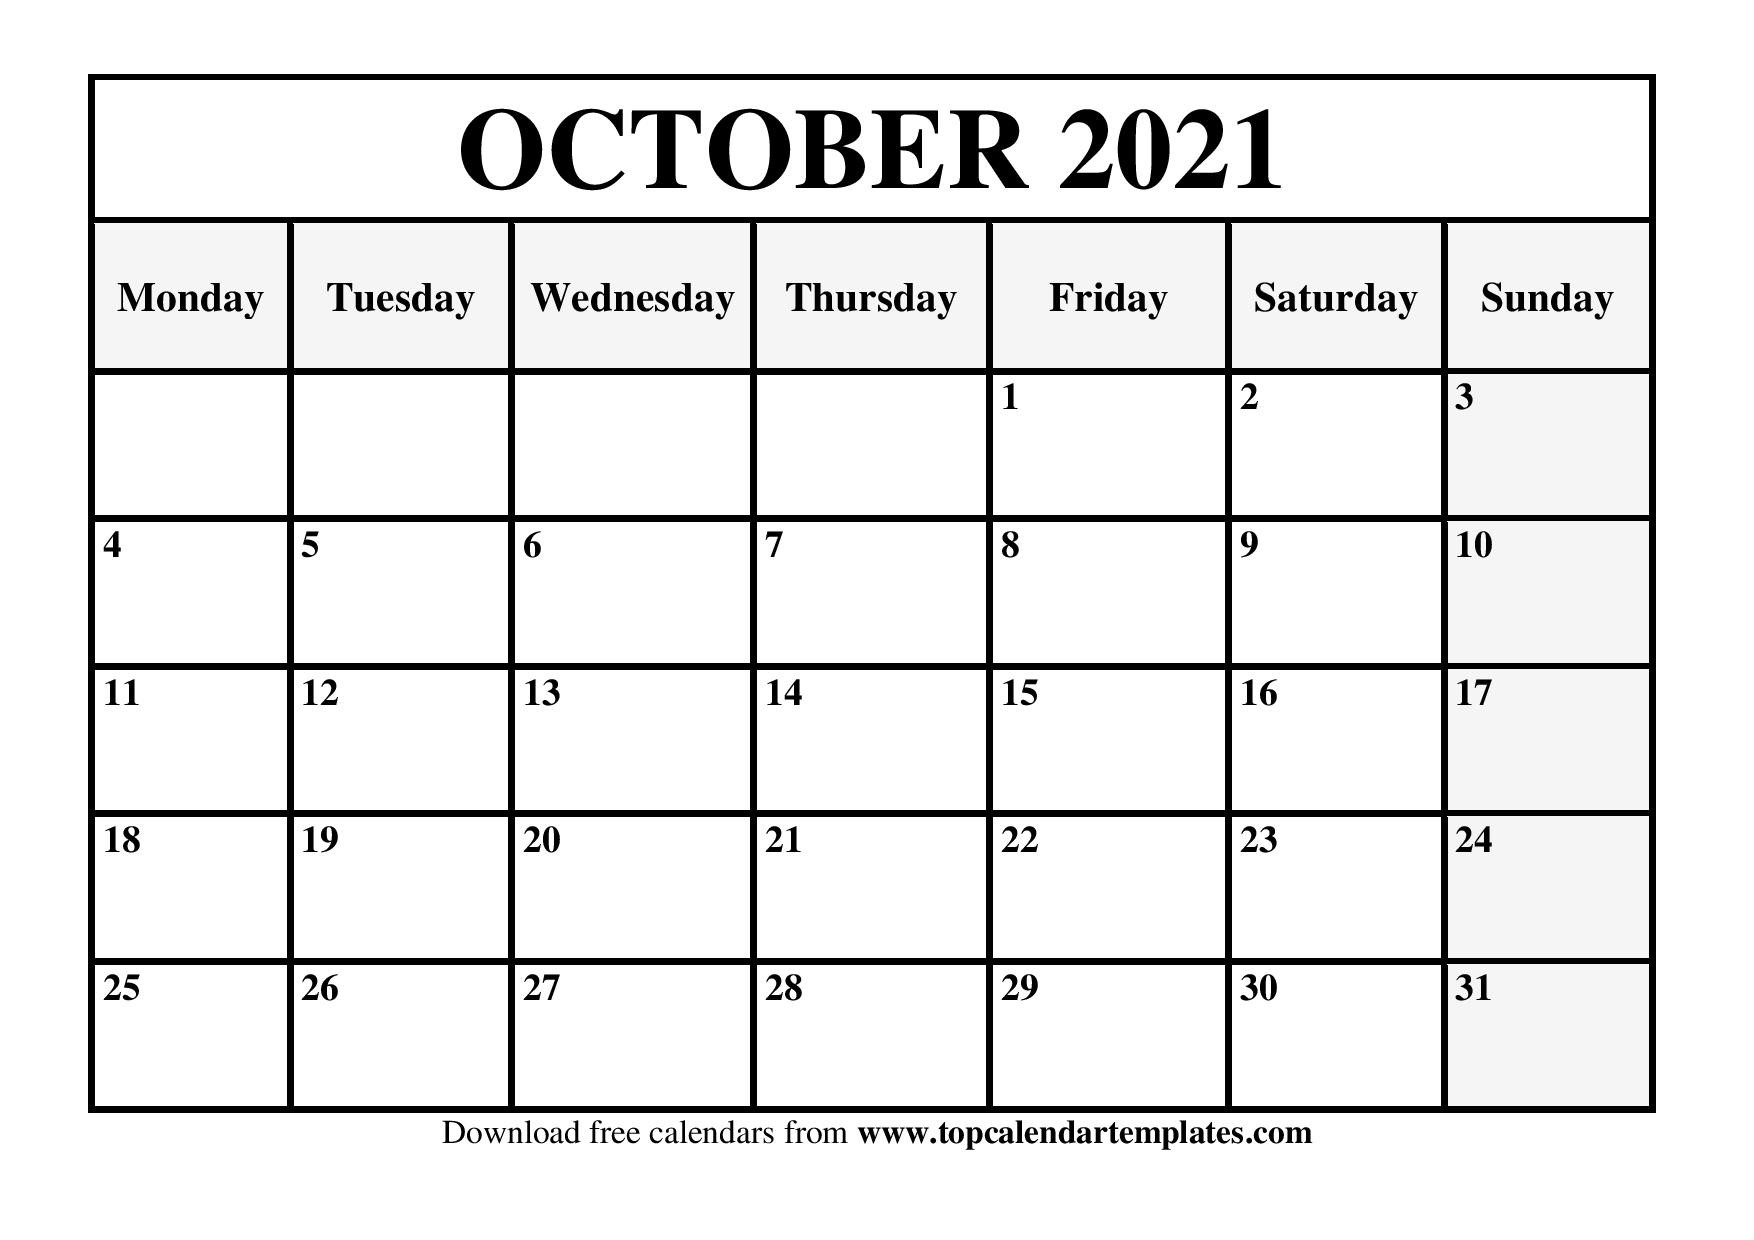 Free October 2021 Calendar Printable - Blank Templates-Monthly Schedule Planner August 2021